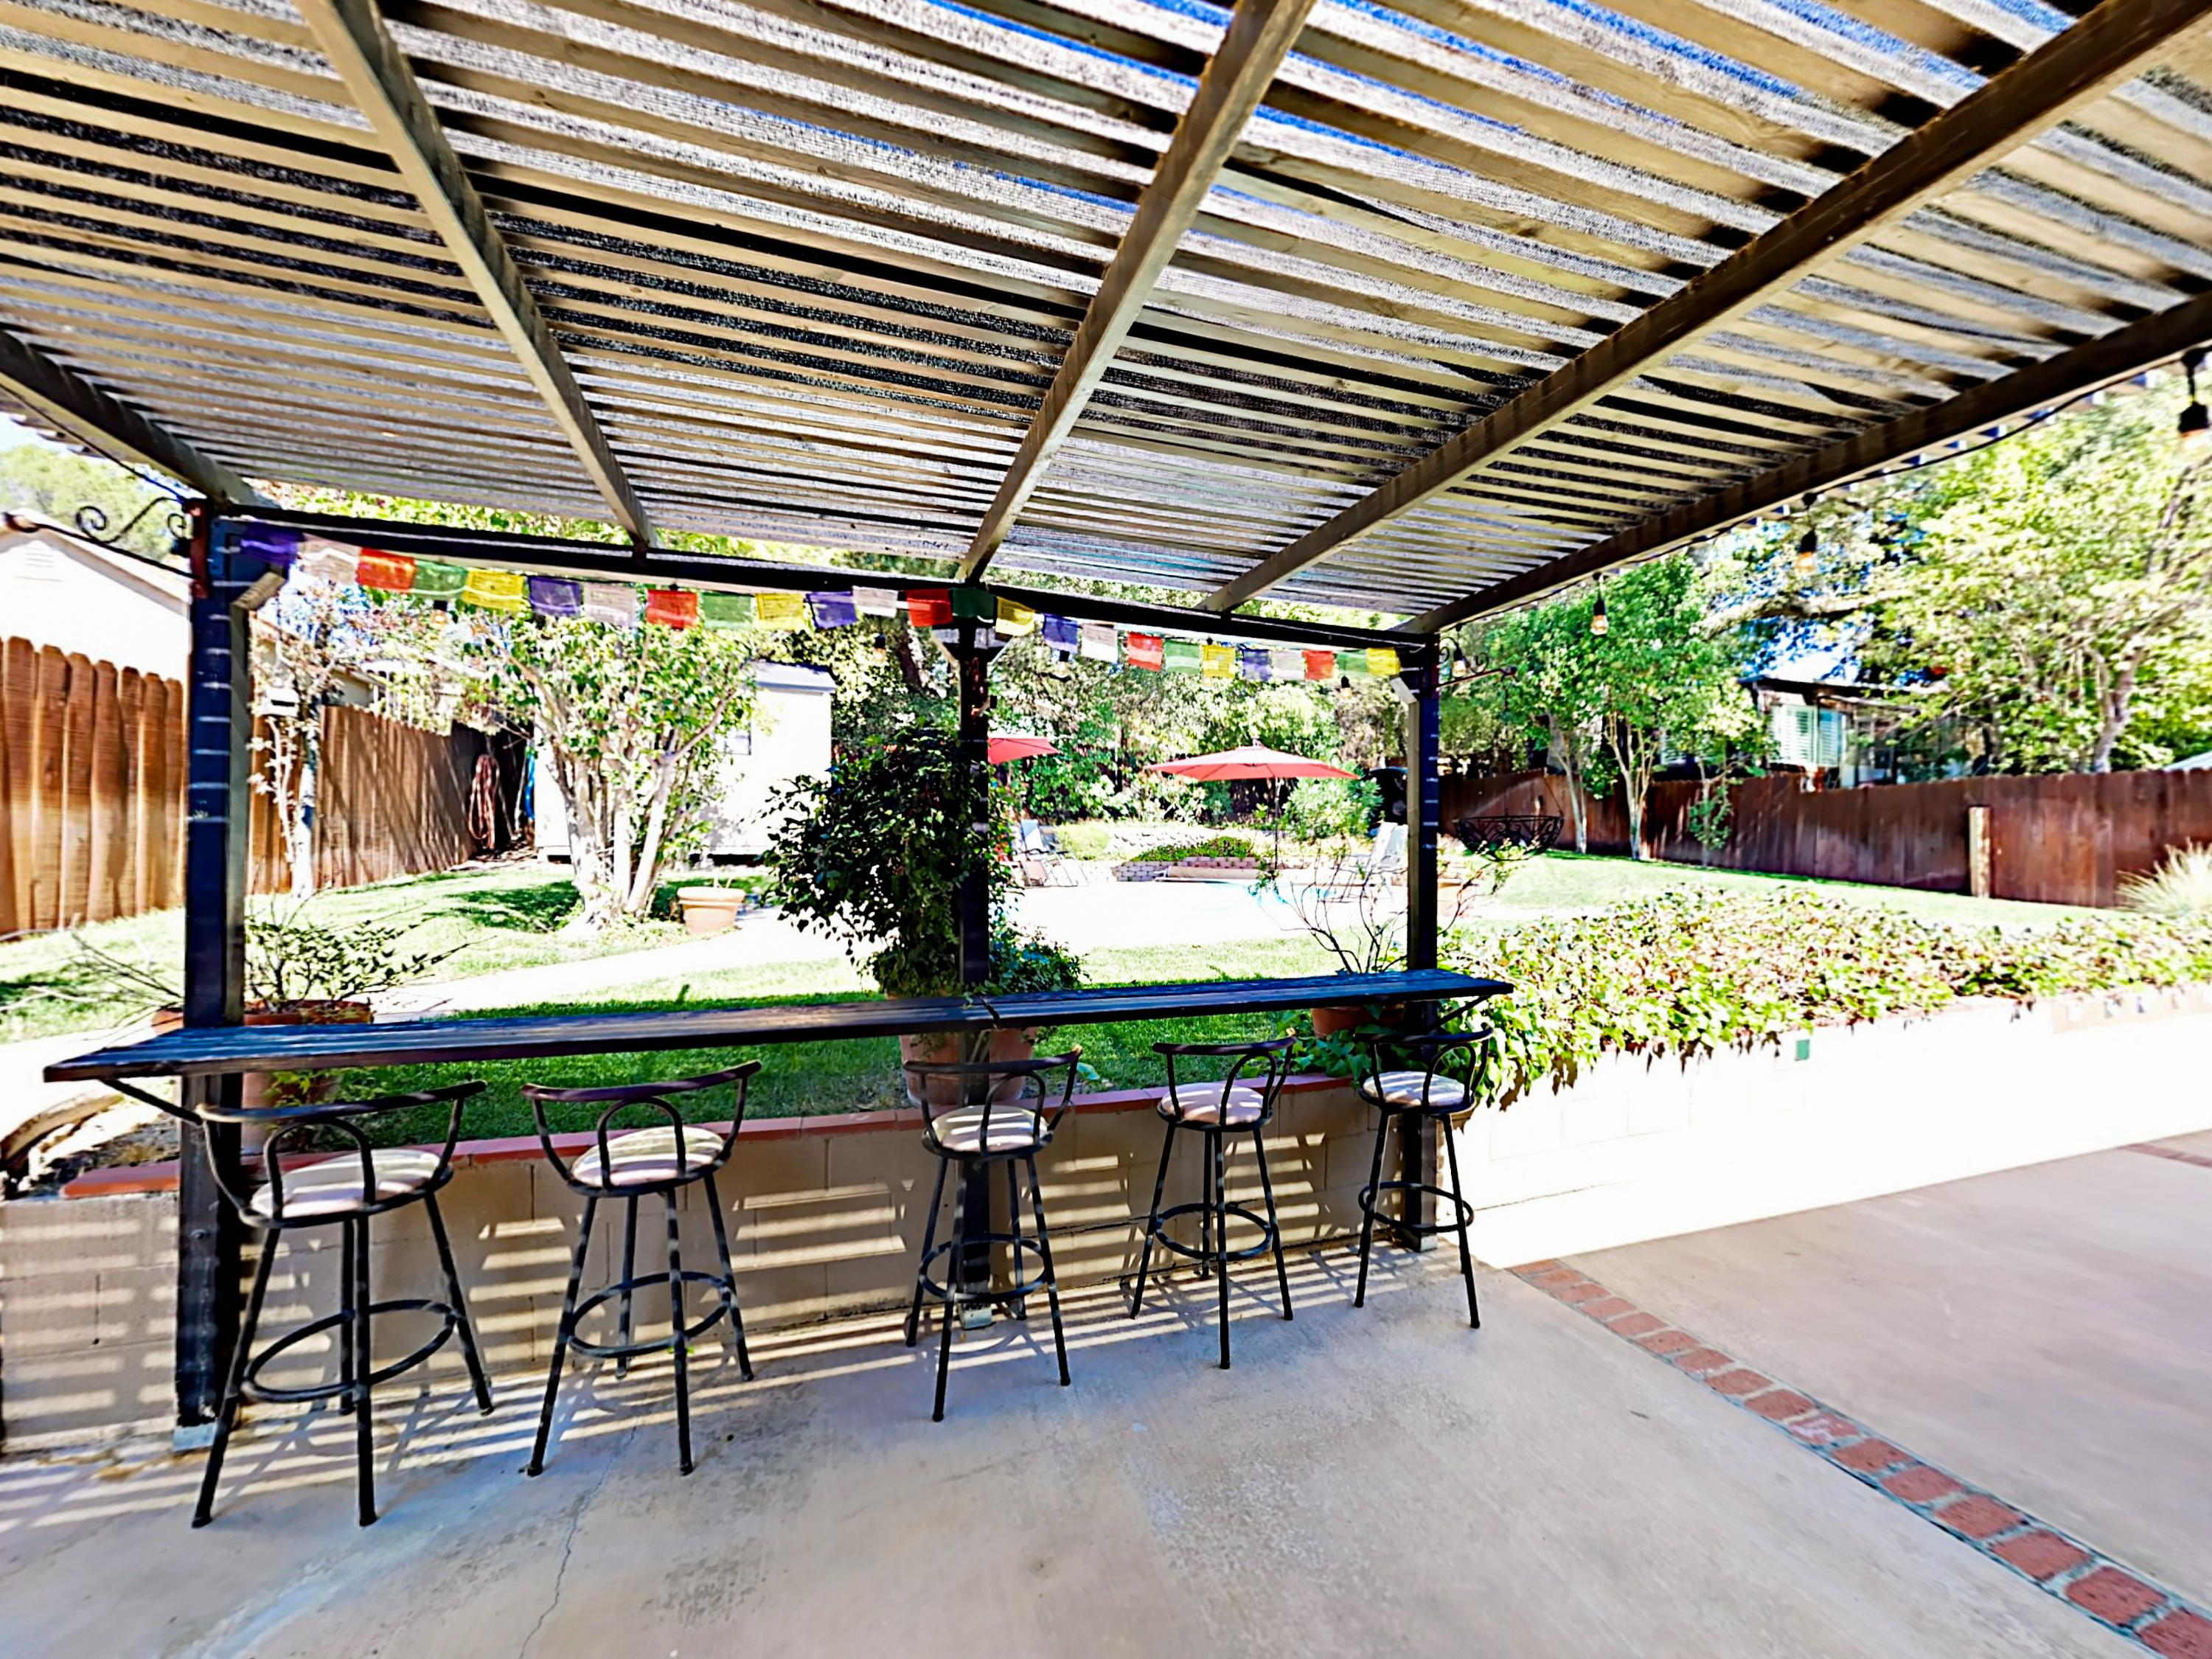 A covered bar area on the patio is the perfect place to enjoy a drink.